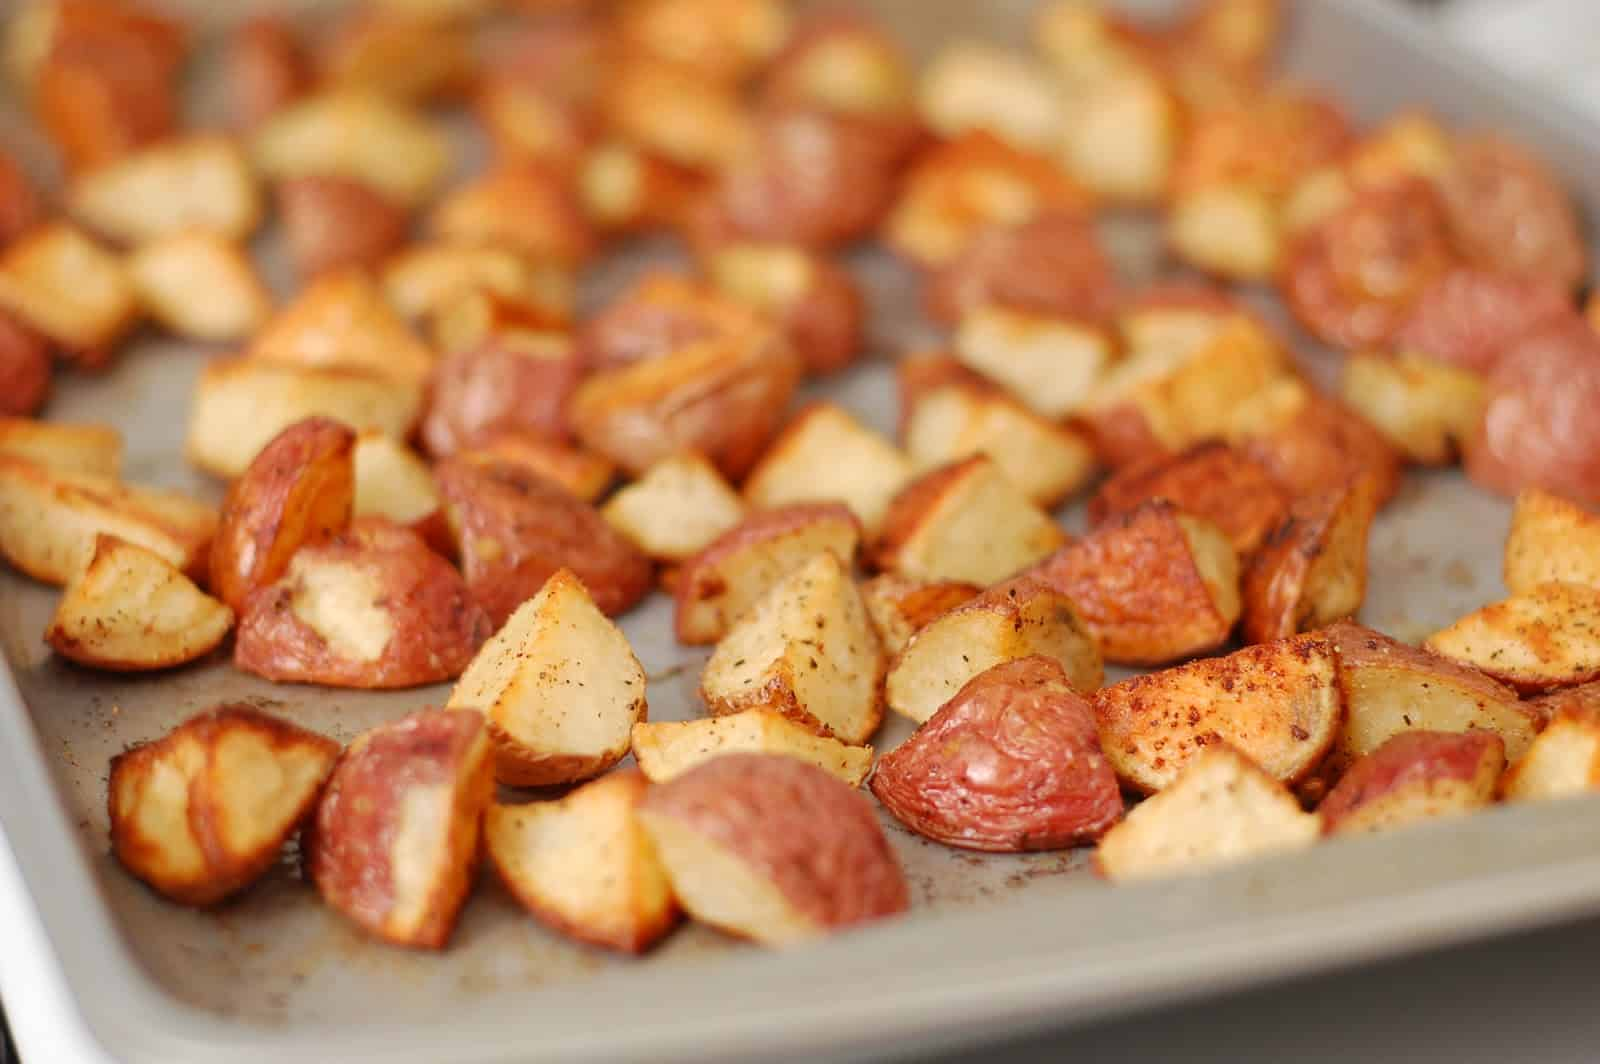 Roasted potatoes are such a versatile dish. You can serve them with ...